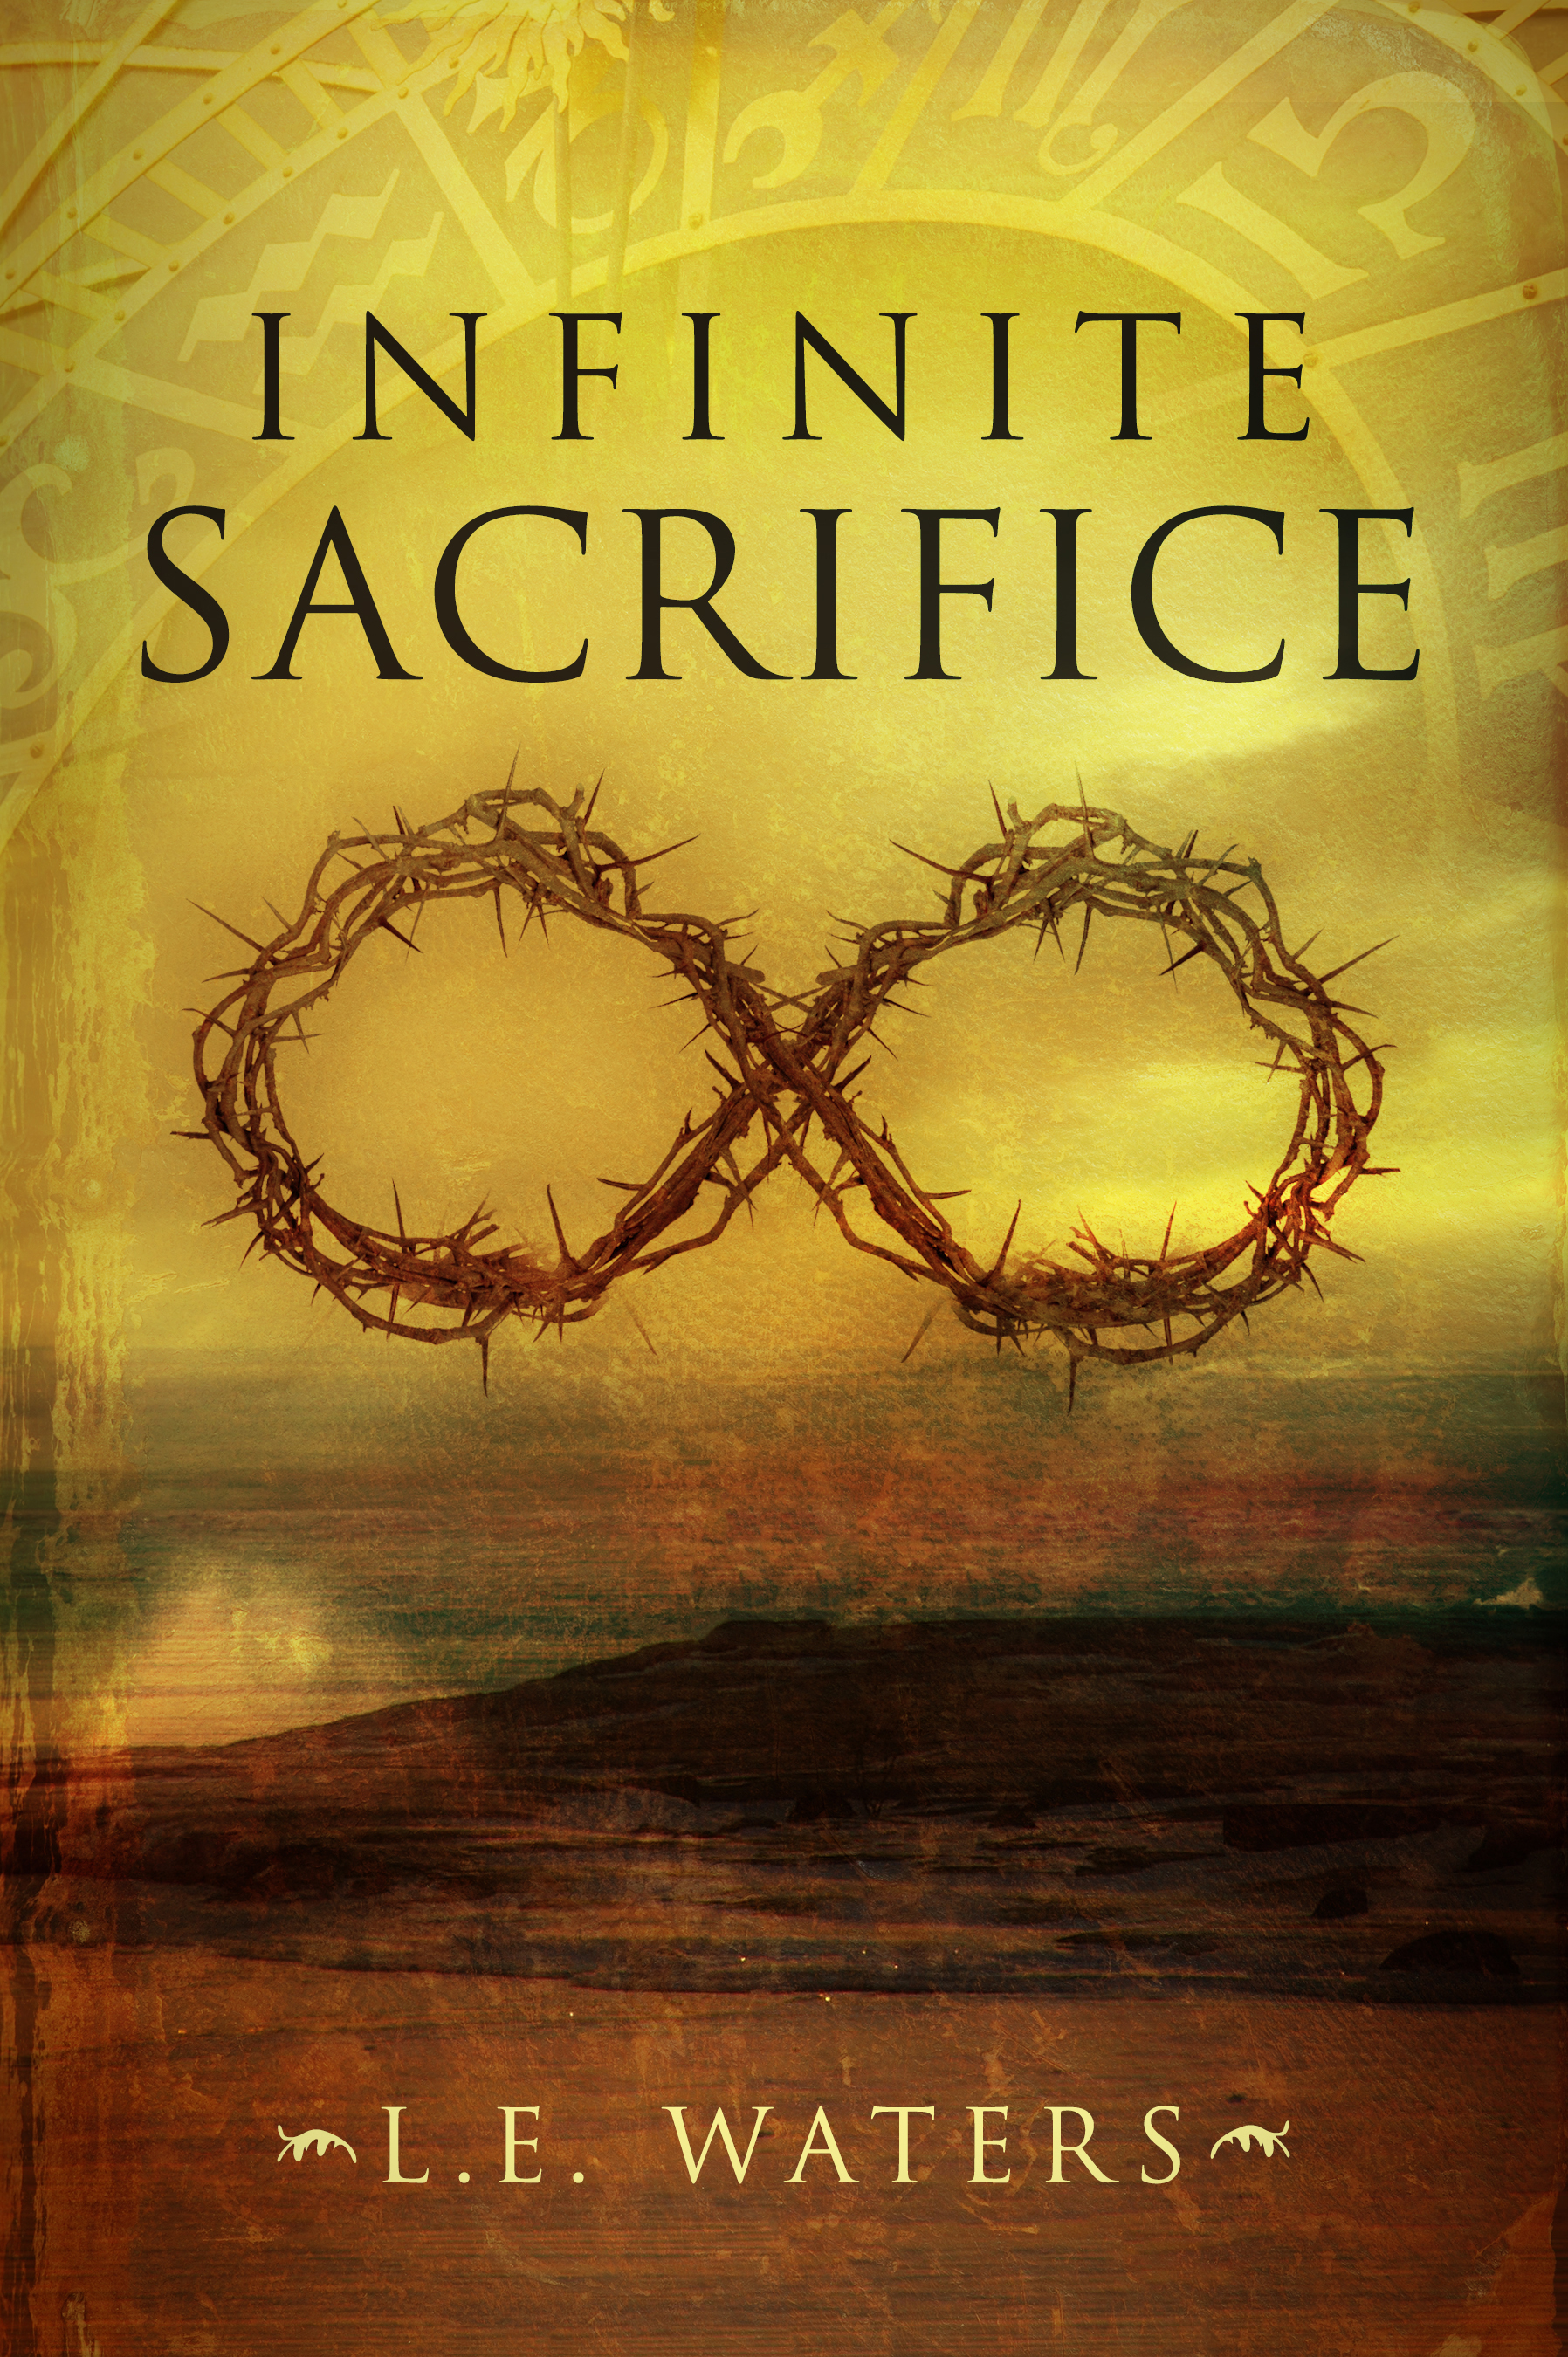 Infinite Sacrifice (Infinite Series, Book 1) (sst-ccxxiii)